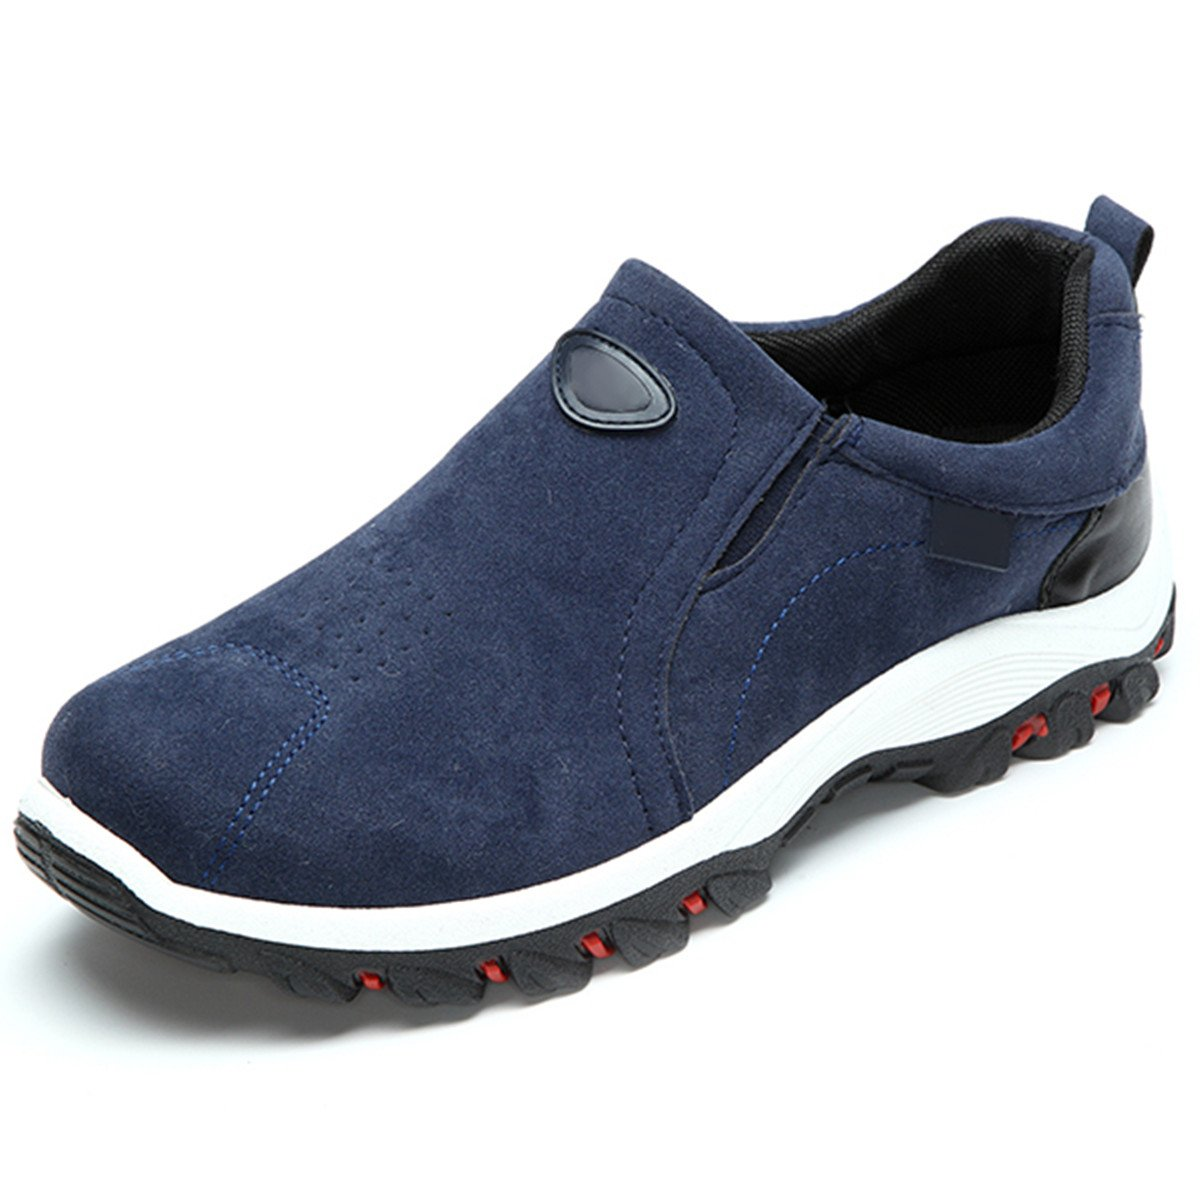 gracosy Suede Hiking Sneaker,Athletic Loafer Casual Outdoor Flat Non-Slip Elderly Walking Breathable Shoes